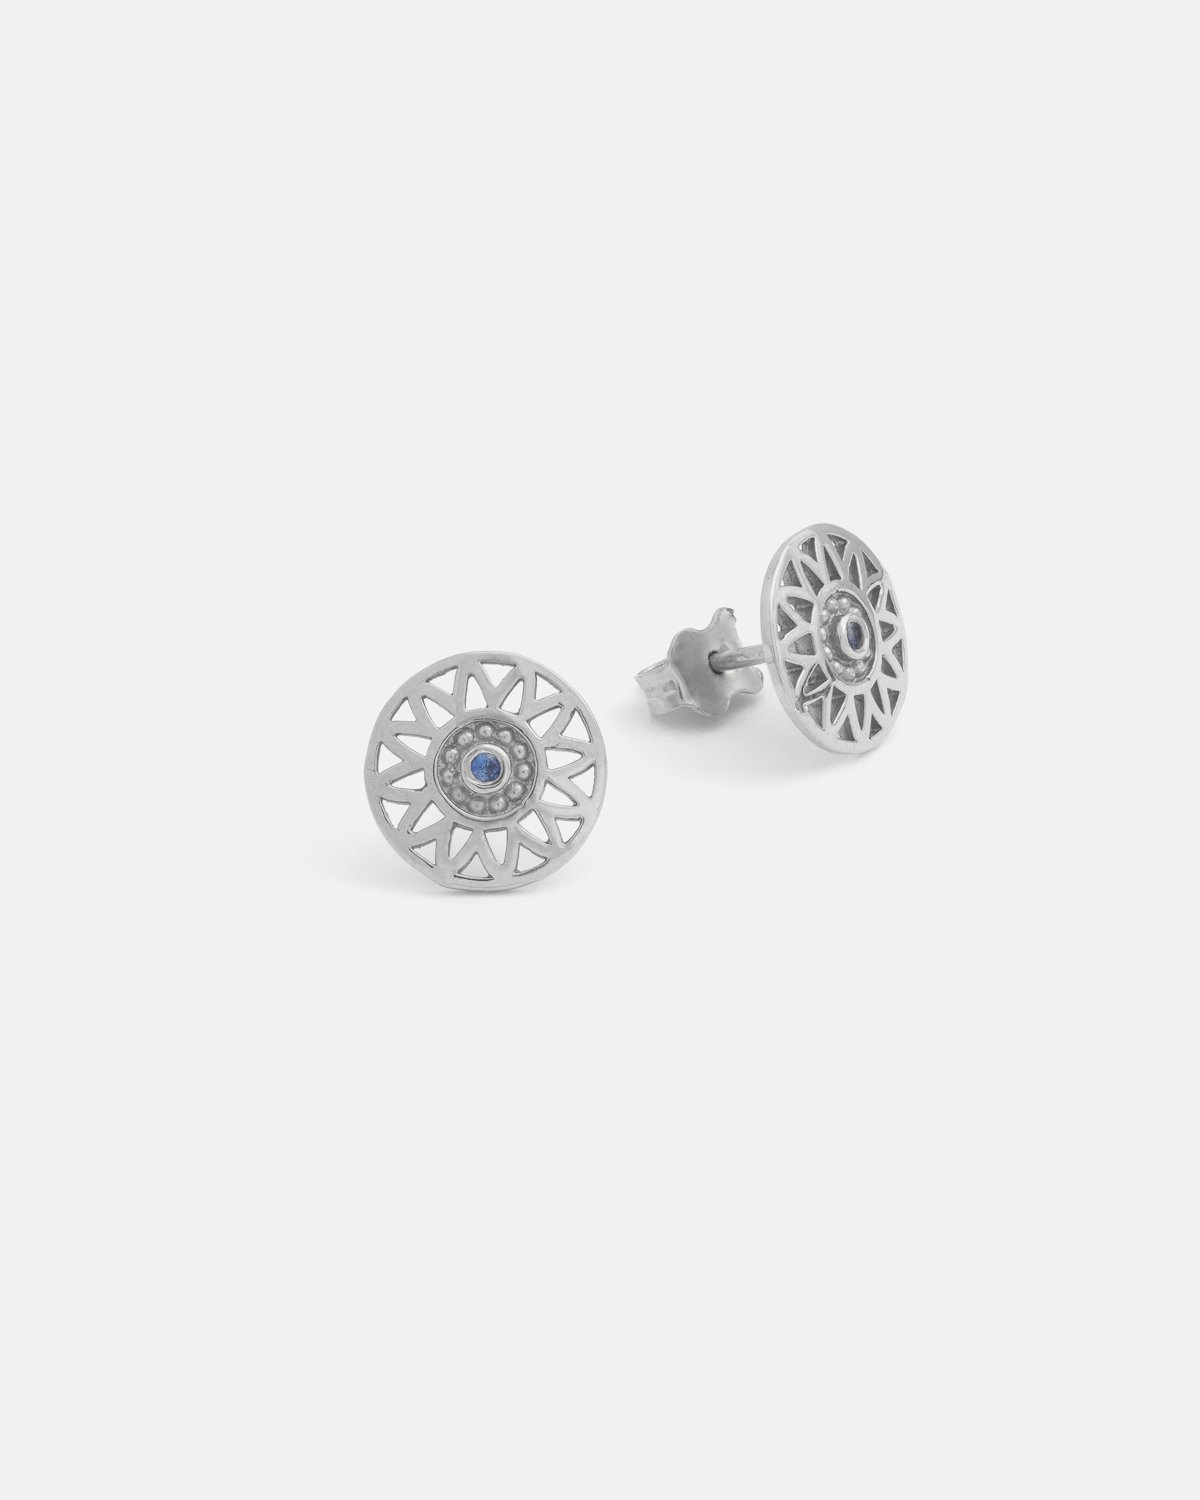 Helios Earrings in Silver with a Blue Sapphire